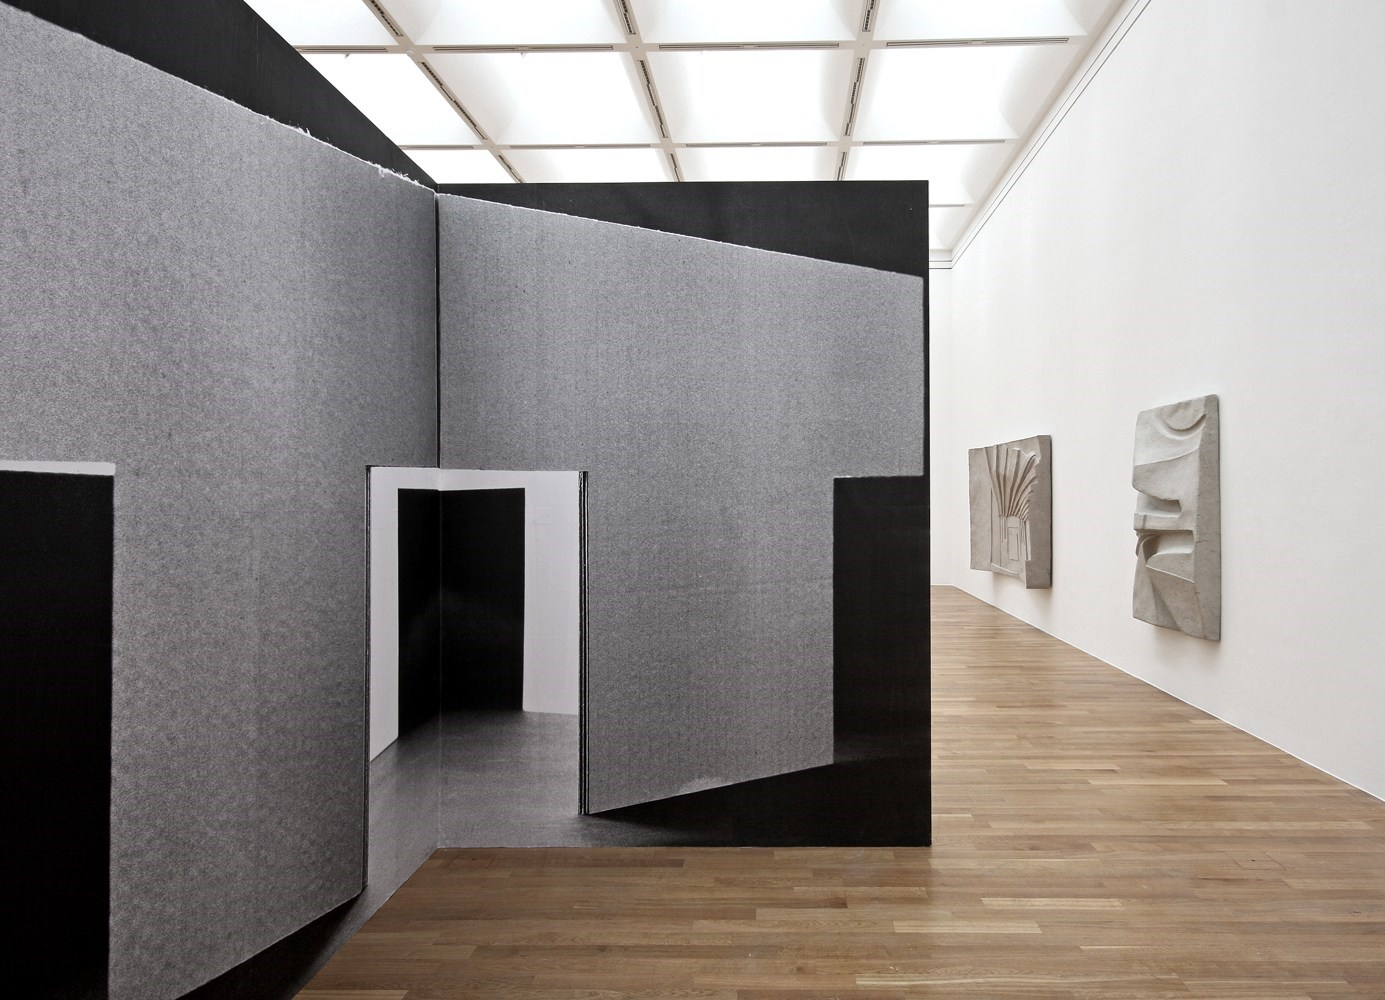 Untitled, 285cm x 420cm x 420cm, black & white prints and wood, 2010 <br />Installation view Kunstmuseum Bonn